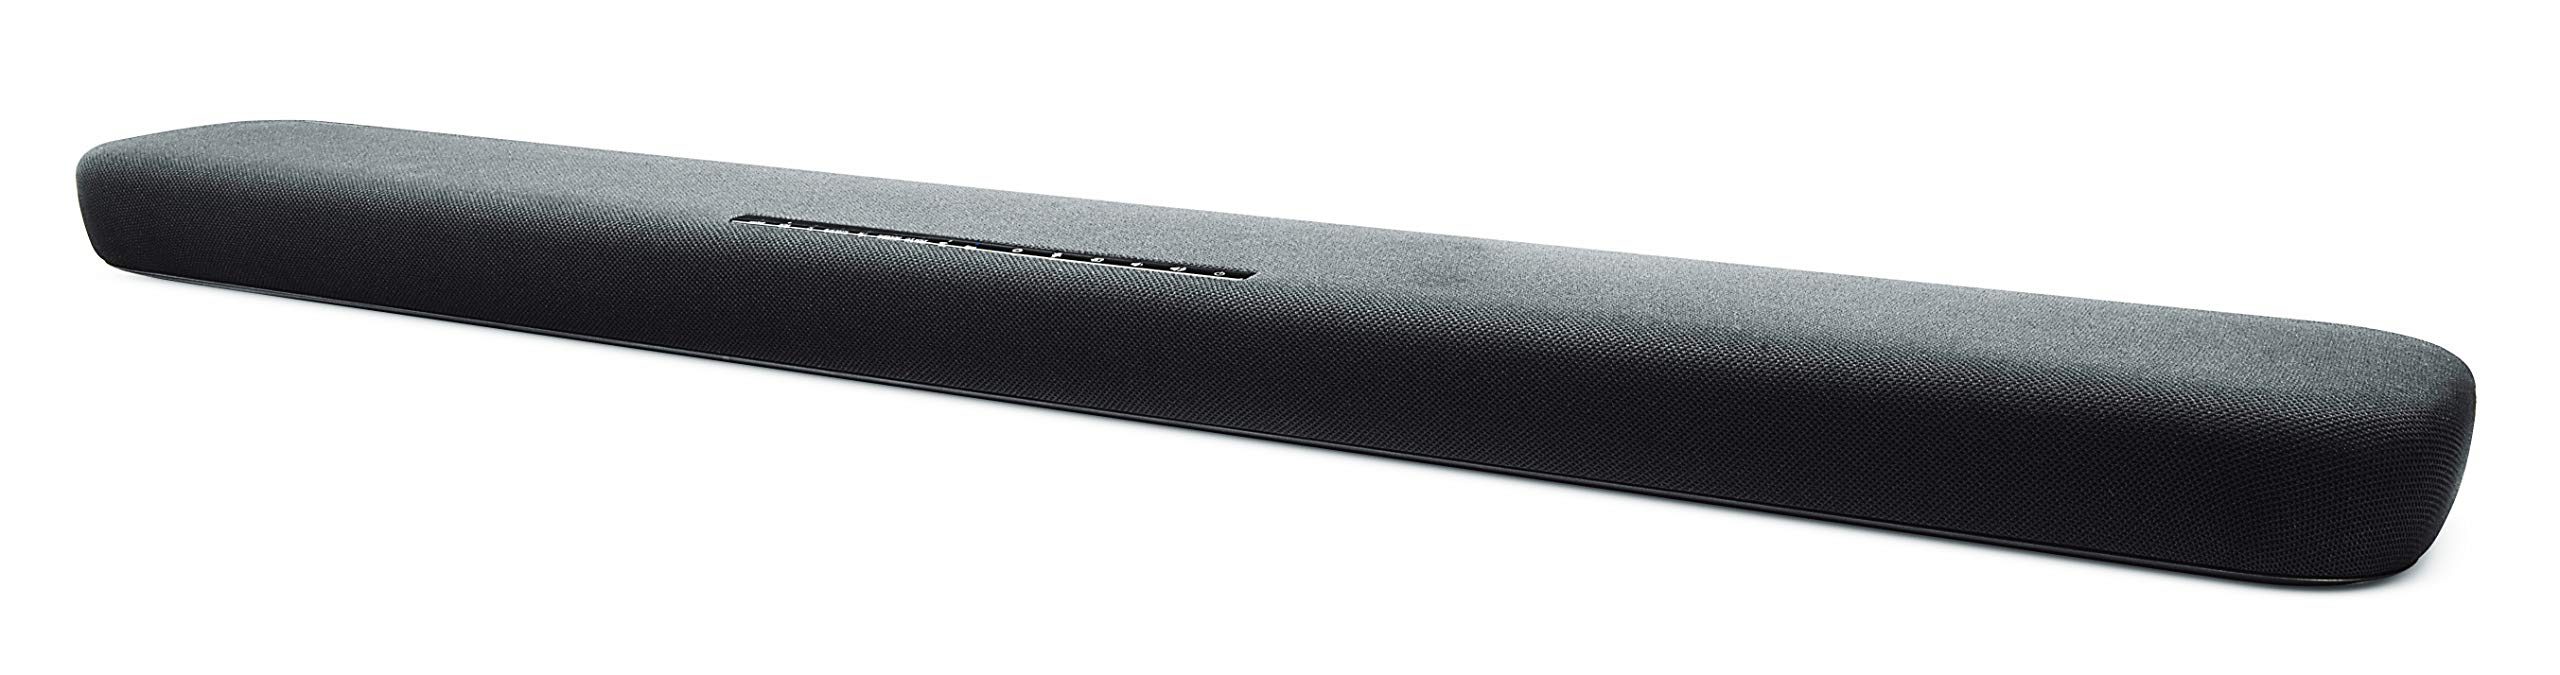 Yamaha YAS-109 Sound Bar with Built-In Subwoofers, Bluetooth, and Alexa Voice Control Built-In by Yamaha